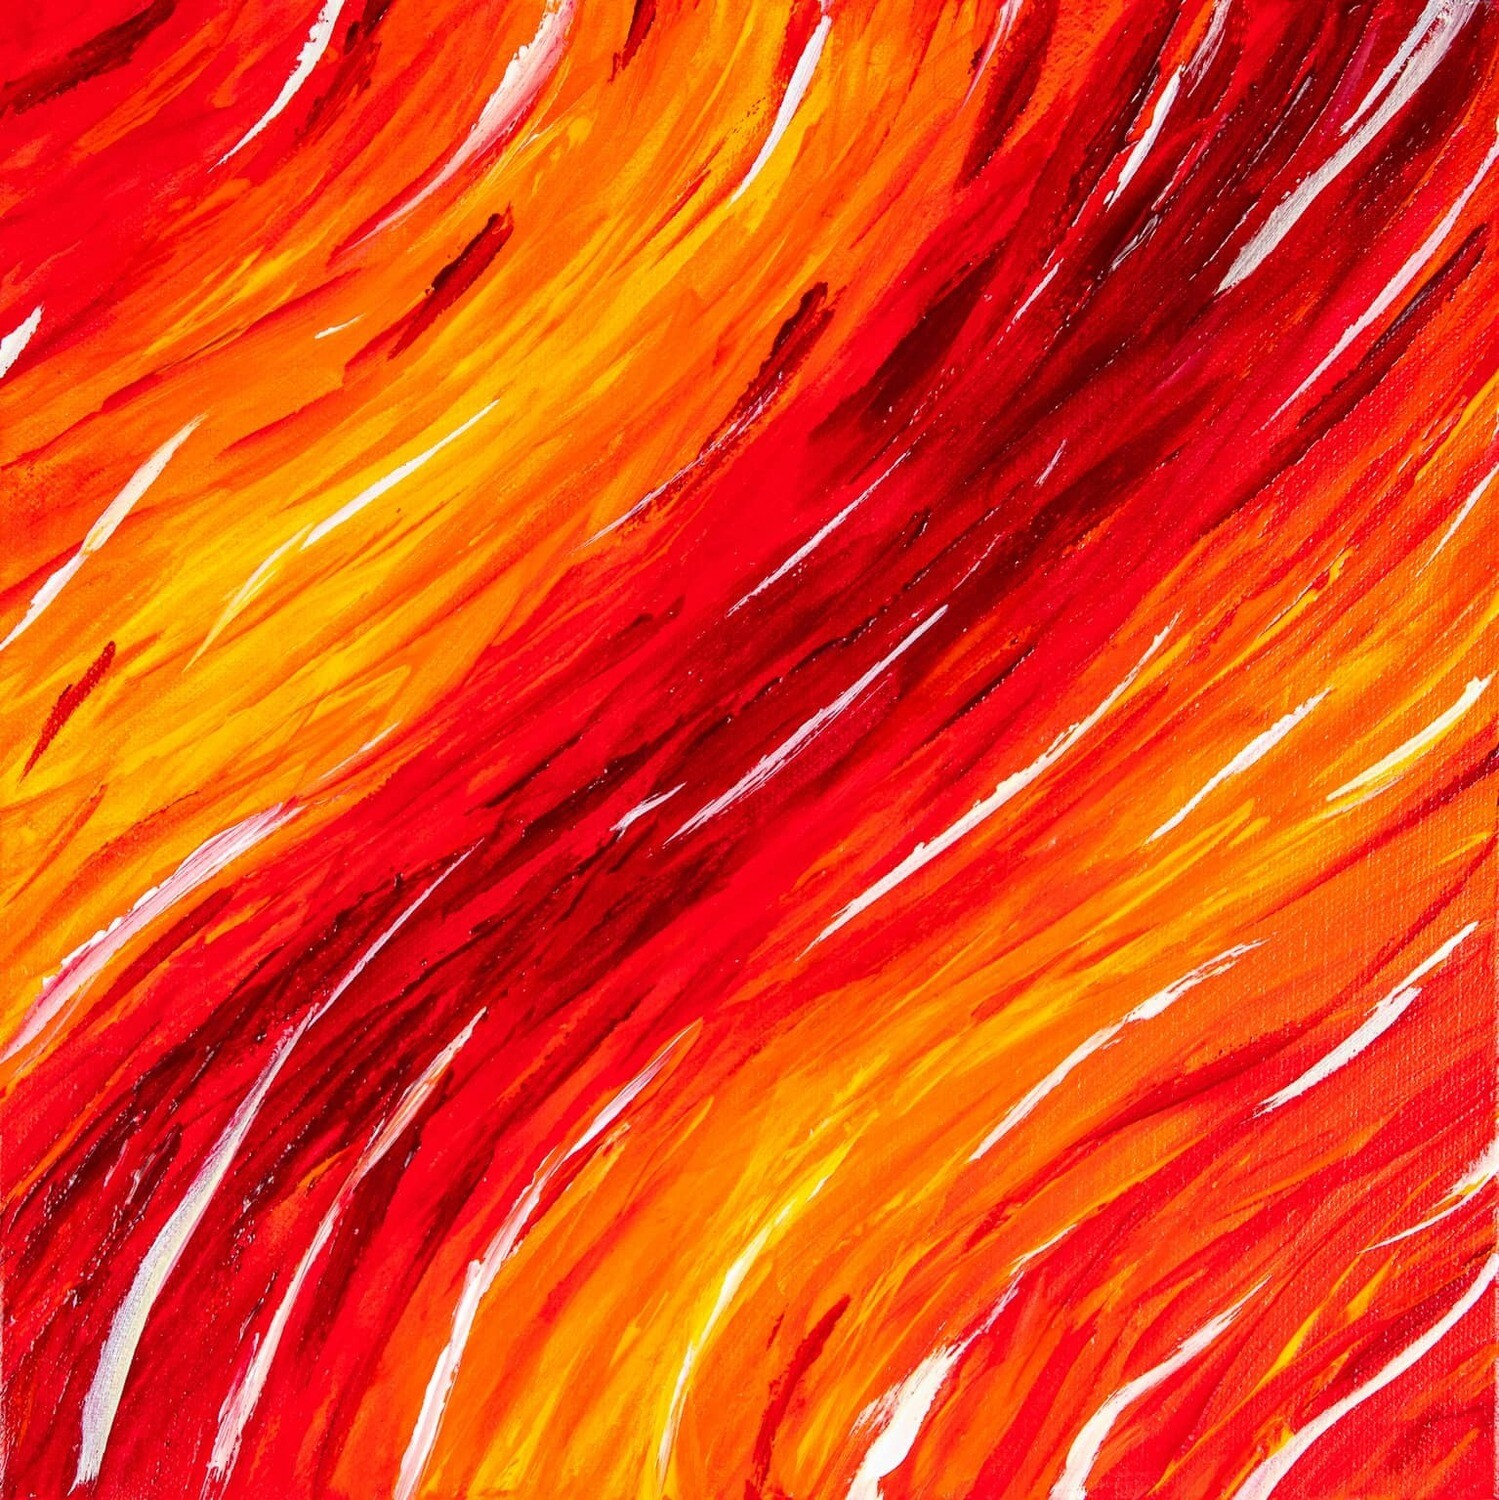 Strokes of Fire